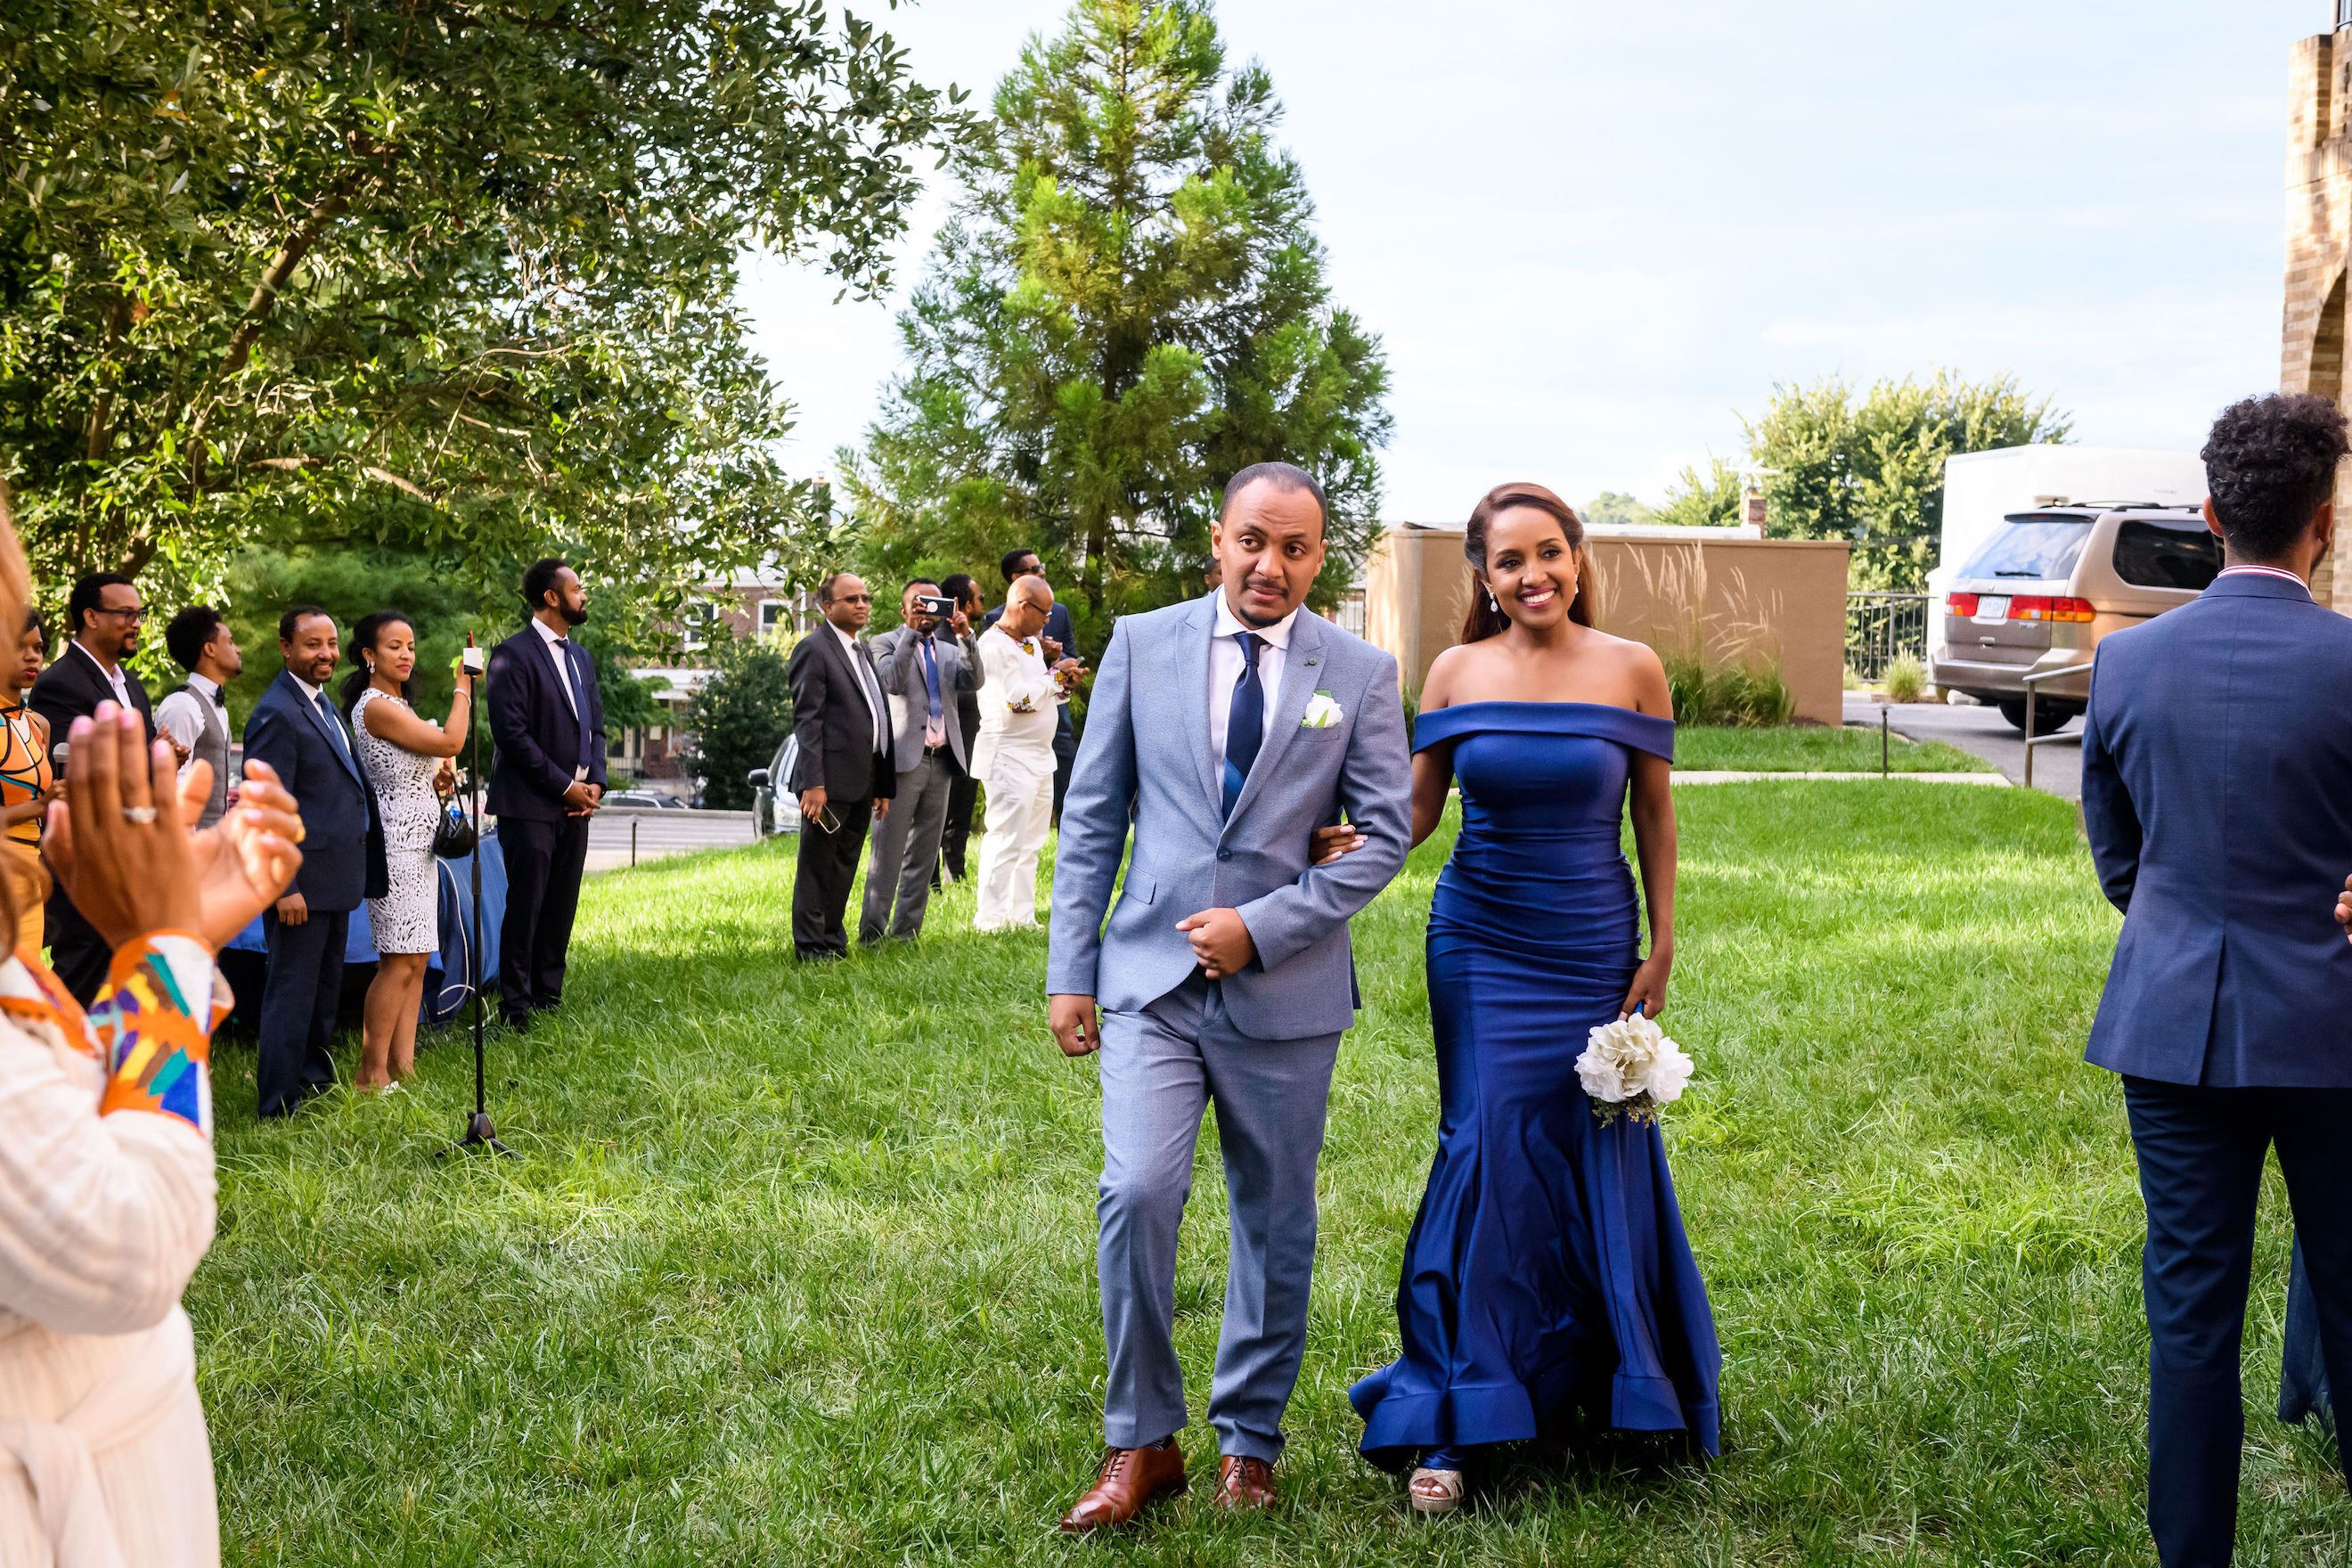 A Gorgeous Wedding On An Equally Perfect Fall Day In Washington, DC